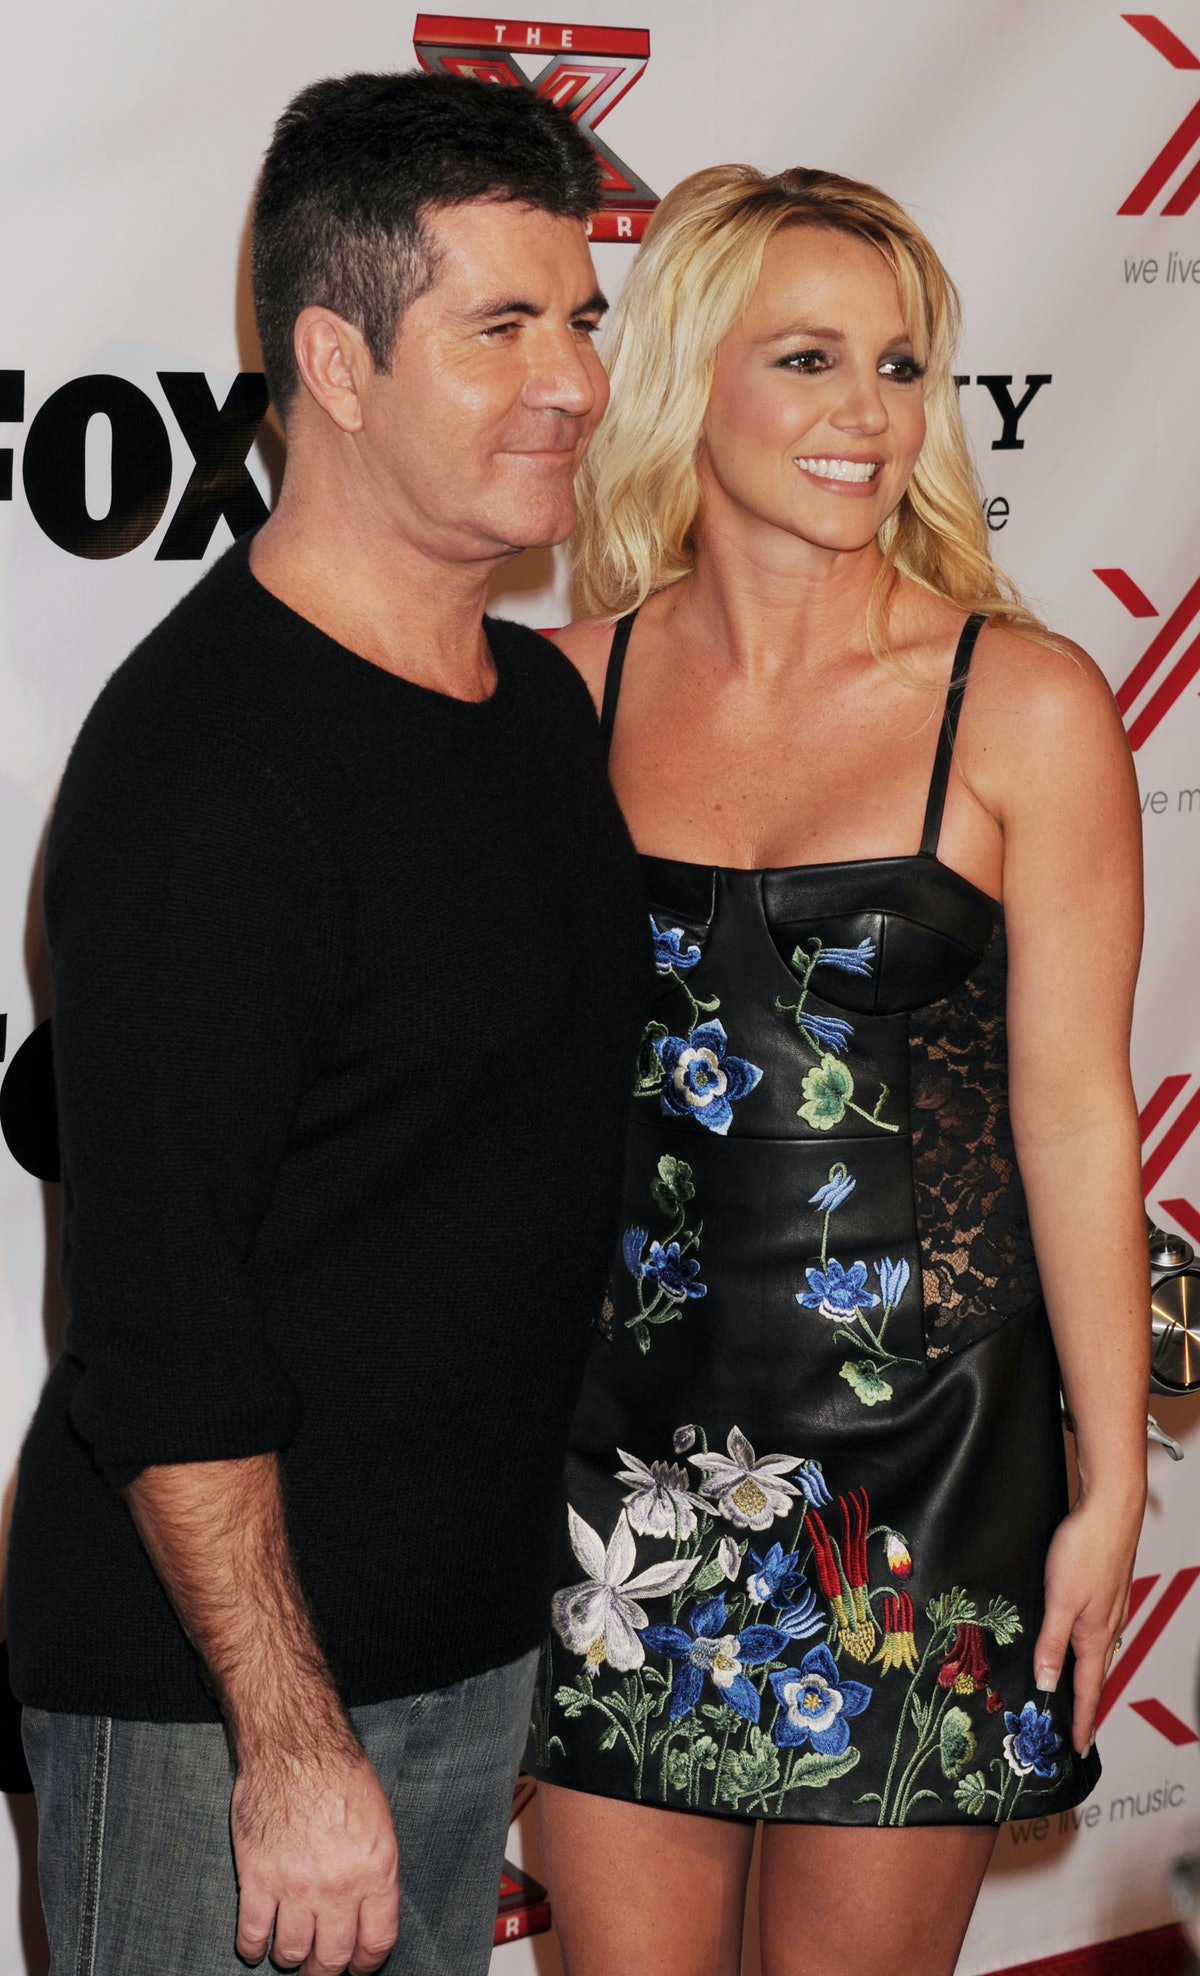 LOS ANGELES, CA - DECEMBER 06: Simon Cowell and Britney Spears arrive at the 'The X Factor' viewing ...